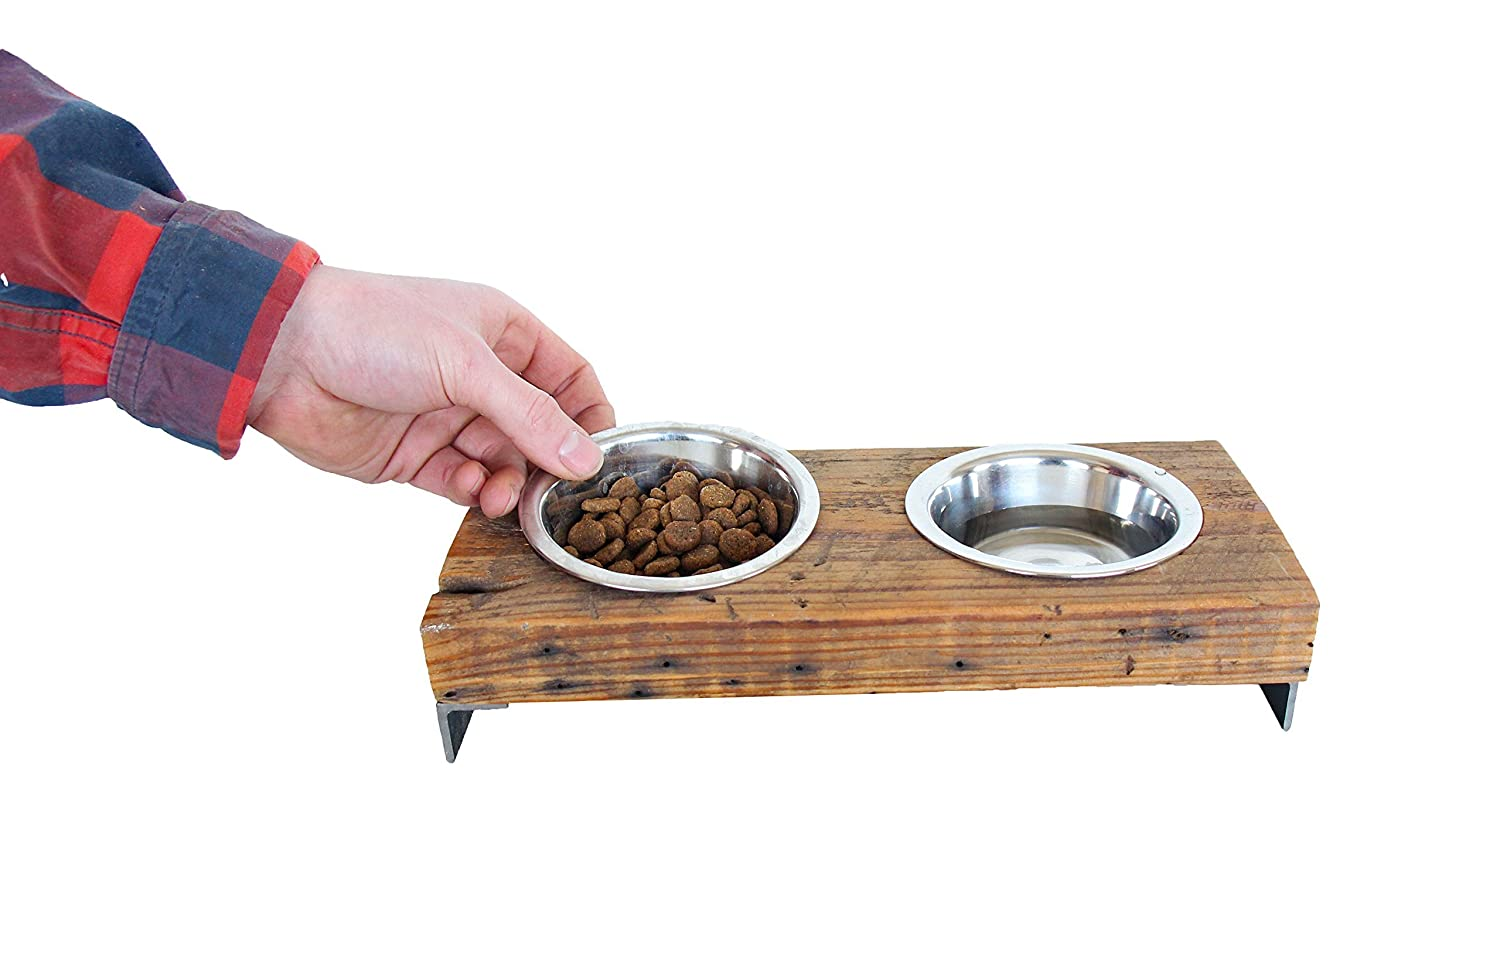 Elevated Pet Bowl for small dogs and cats, Raised Pet Feeder, dog bowl stand, cat bowl stand, rustic pet feeder